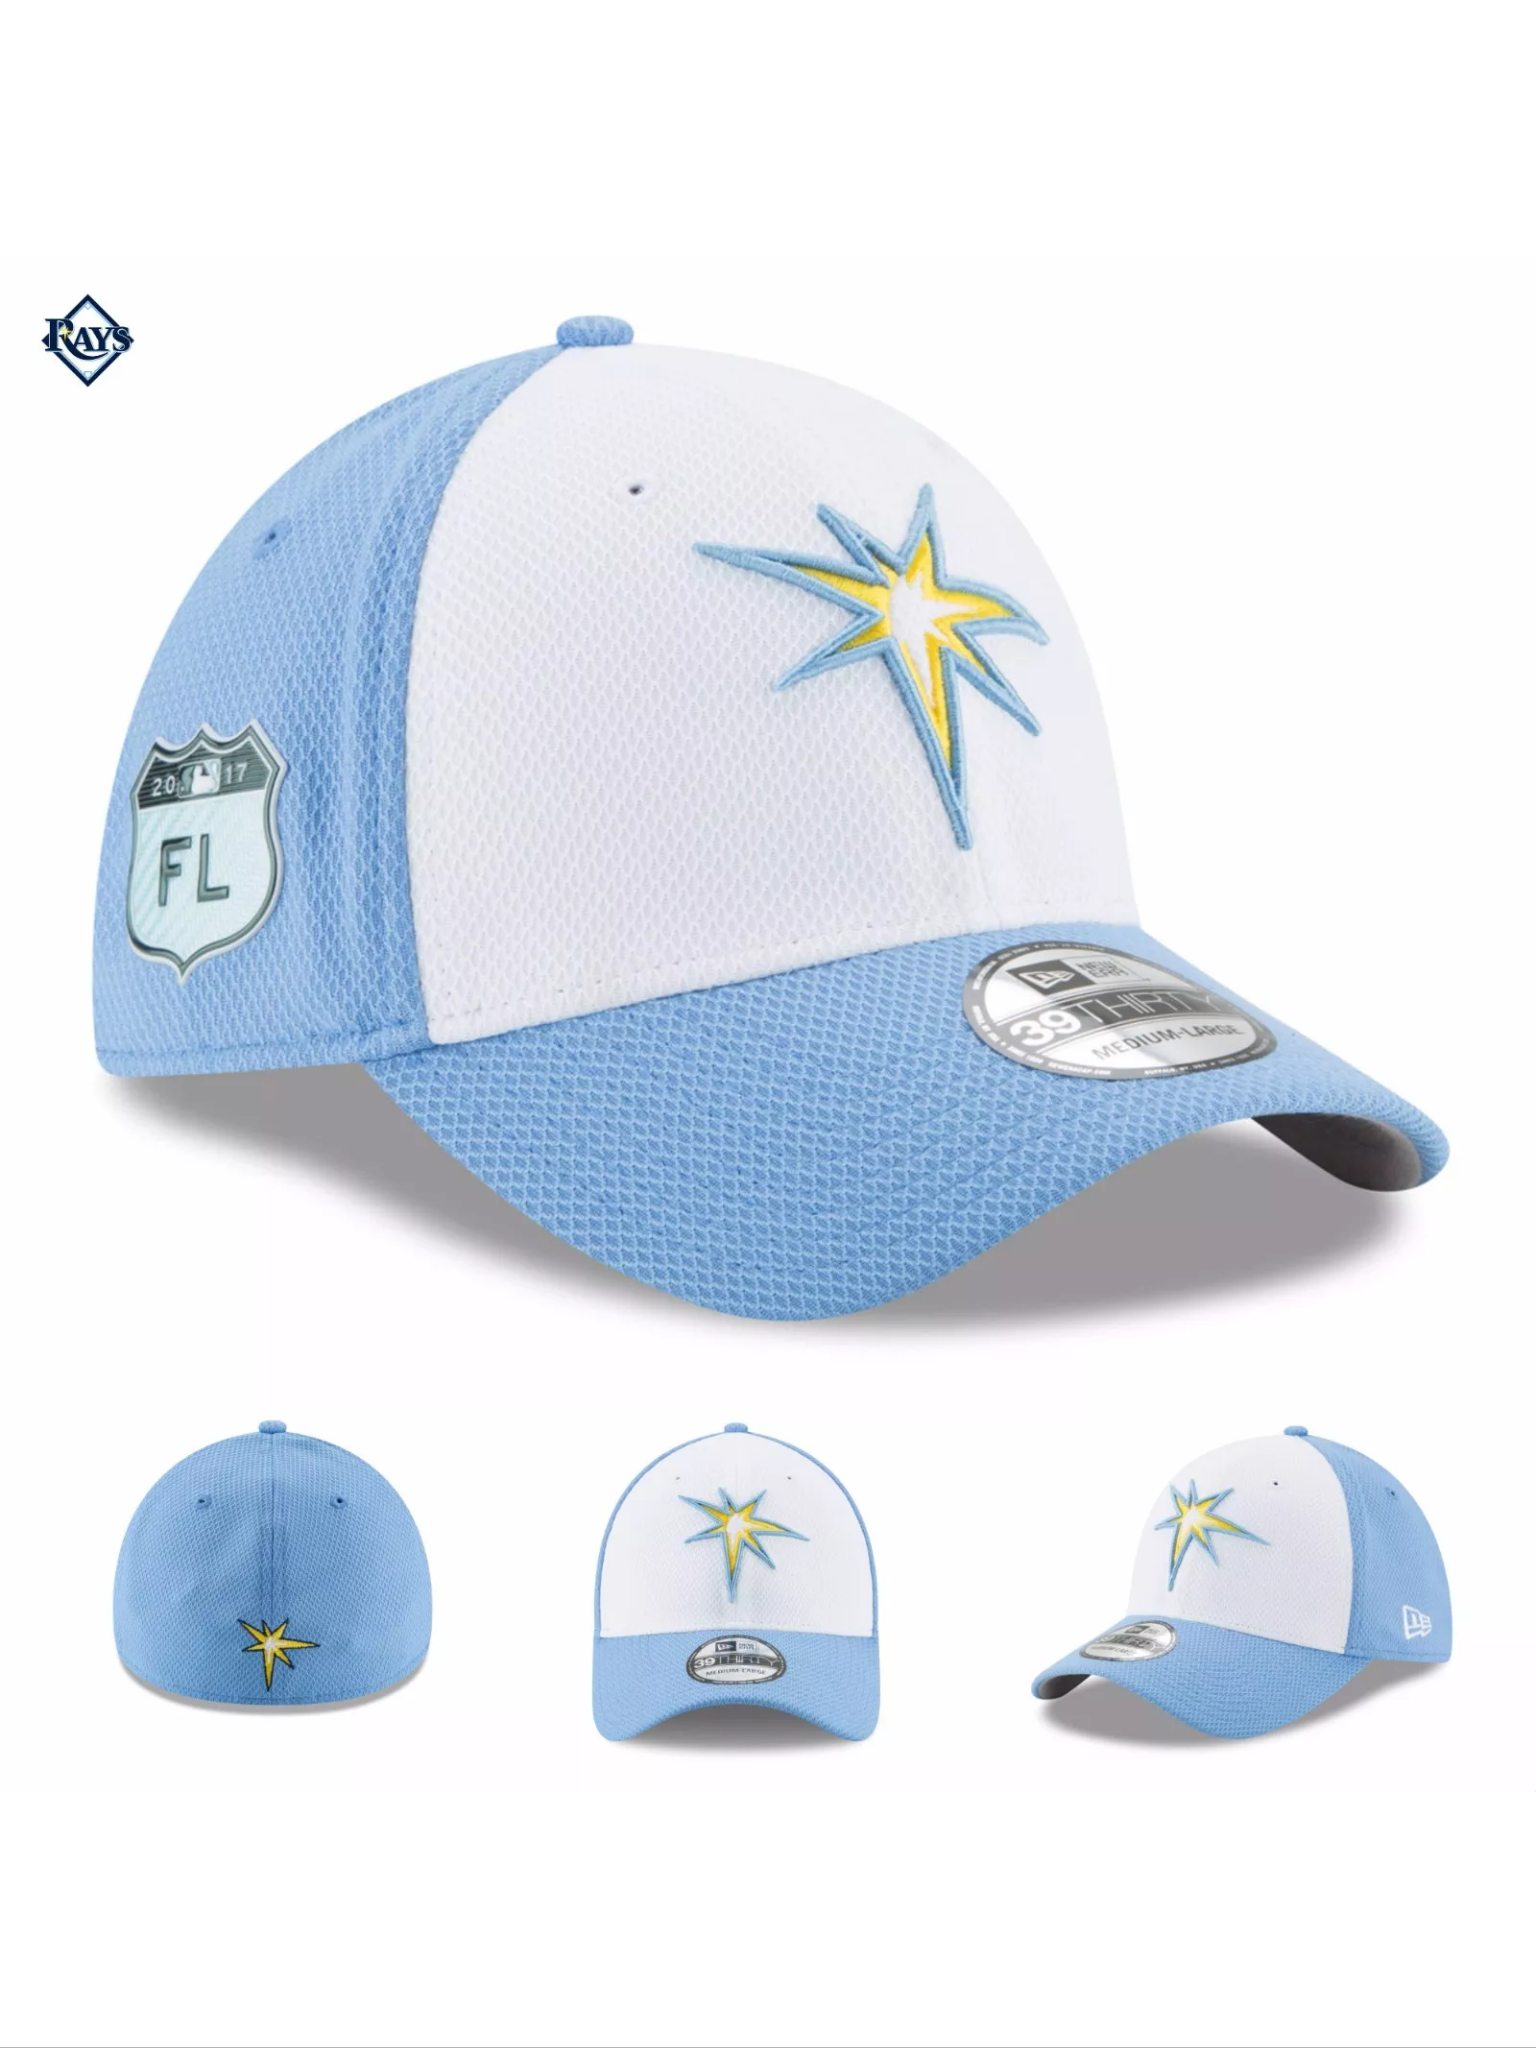 separation shoes 97c75 7c3c5 Men s Tampa Bay Rays New Era Light Blue 2017 Spring Training Diamond Era  Low Profile 59FIFTY Fitted Hat